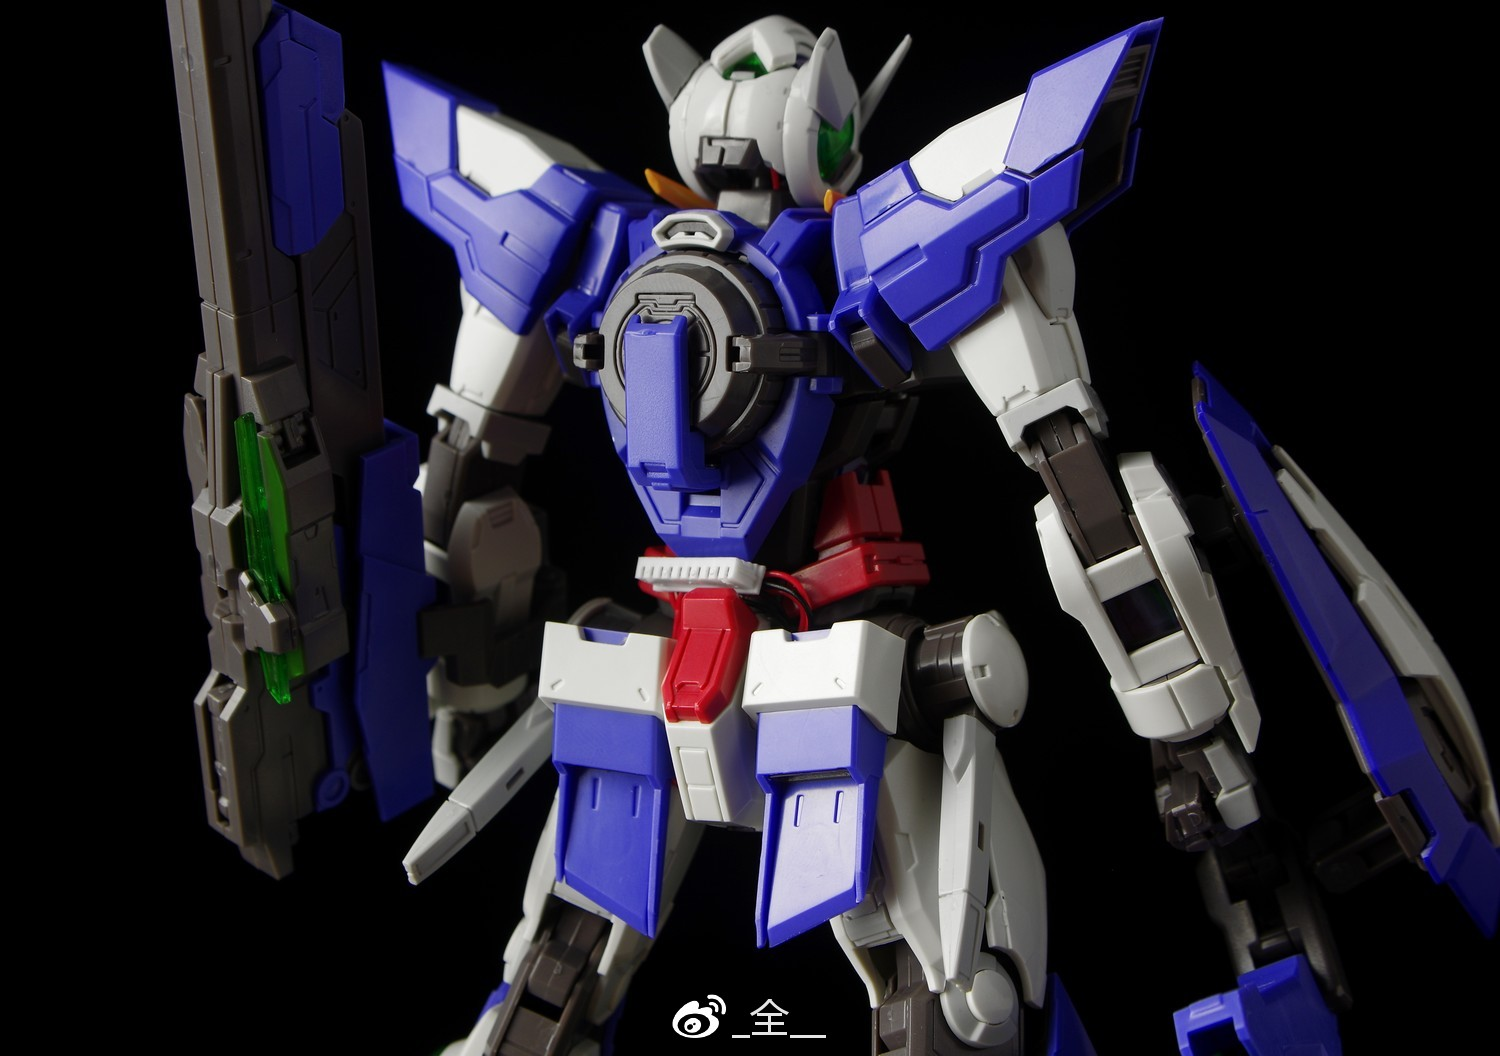 S269_mg_exia_led_hobby_star_inask_098.jpg